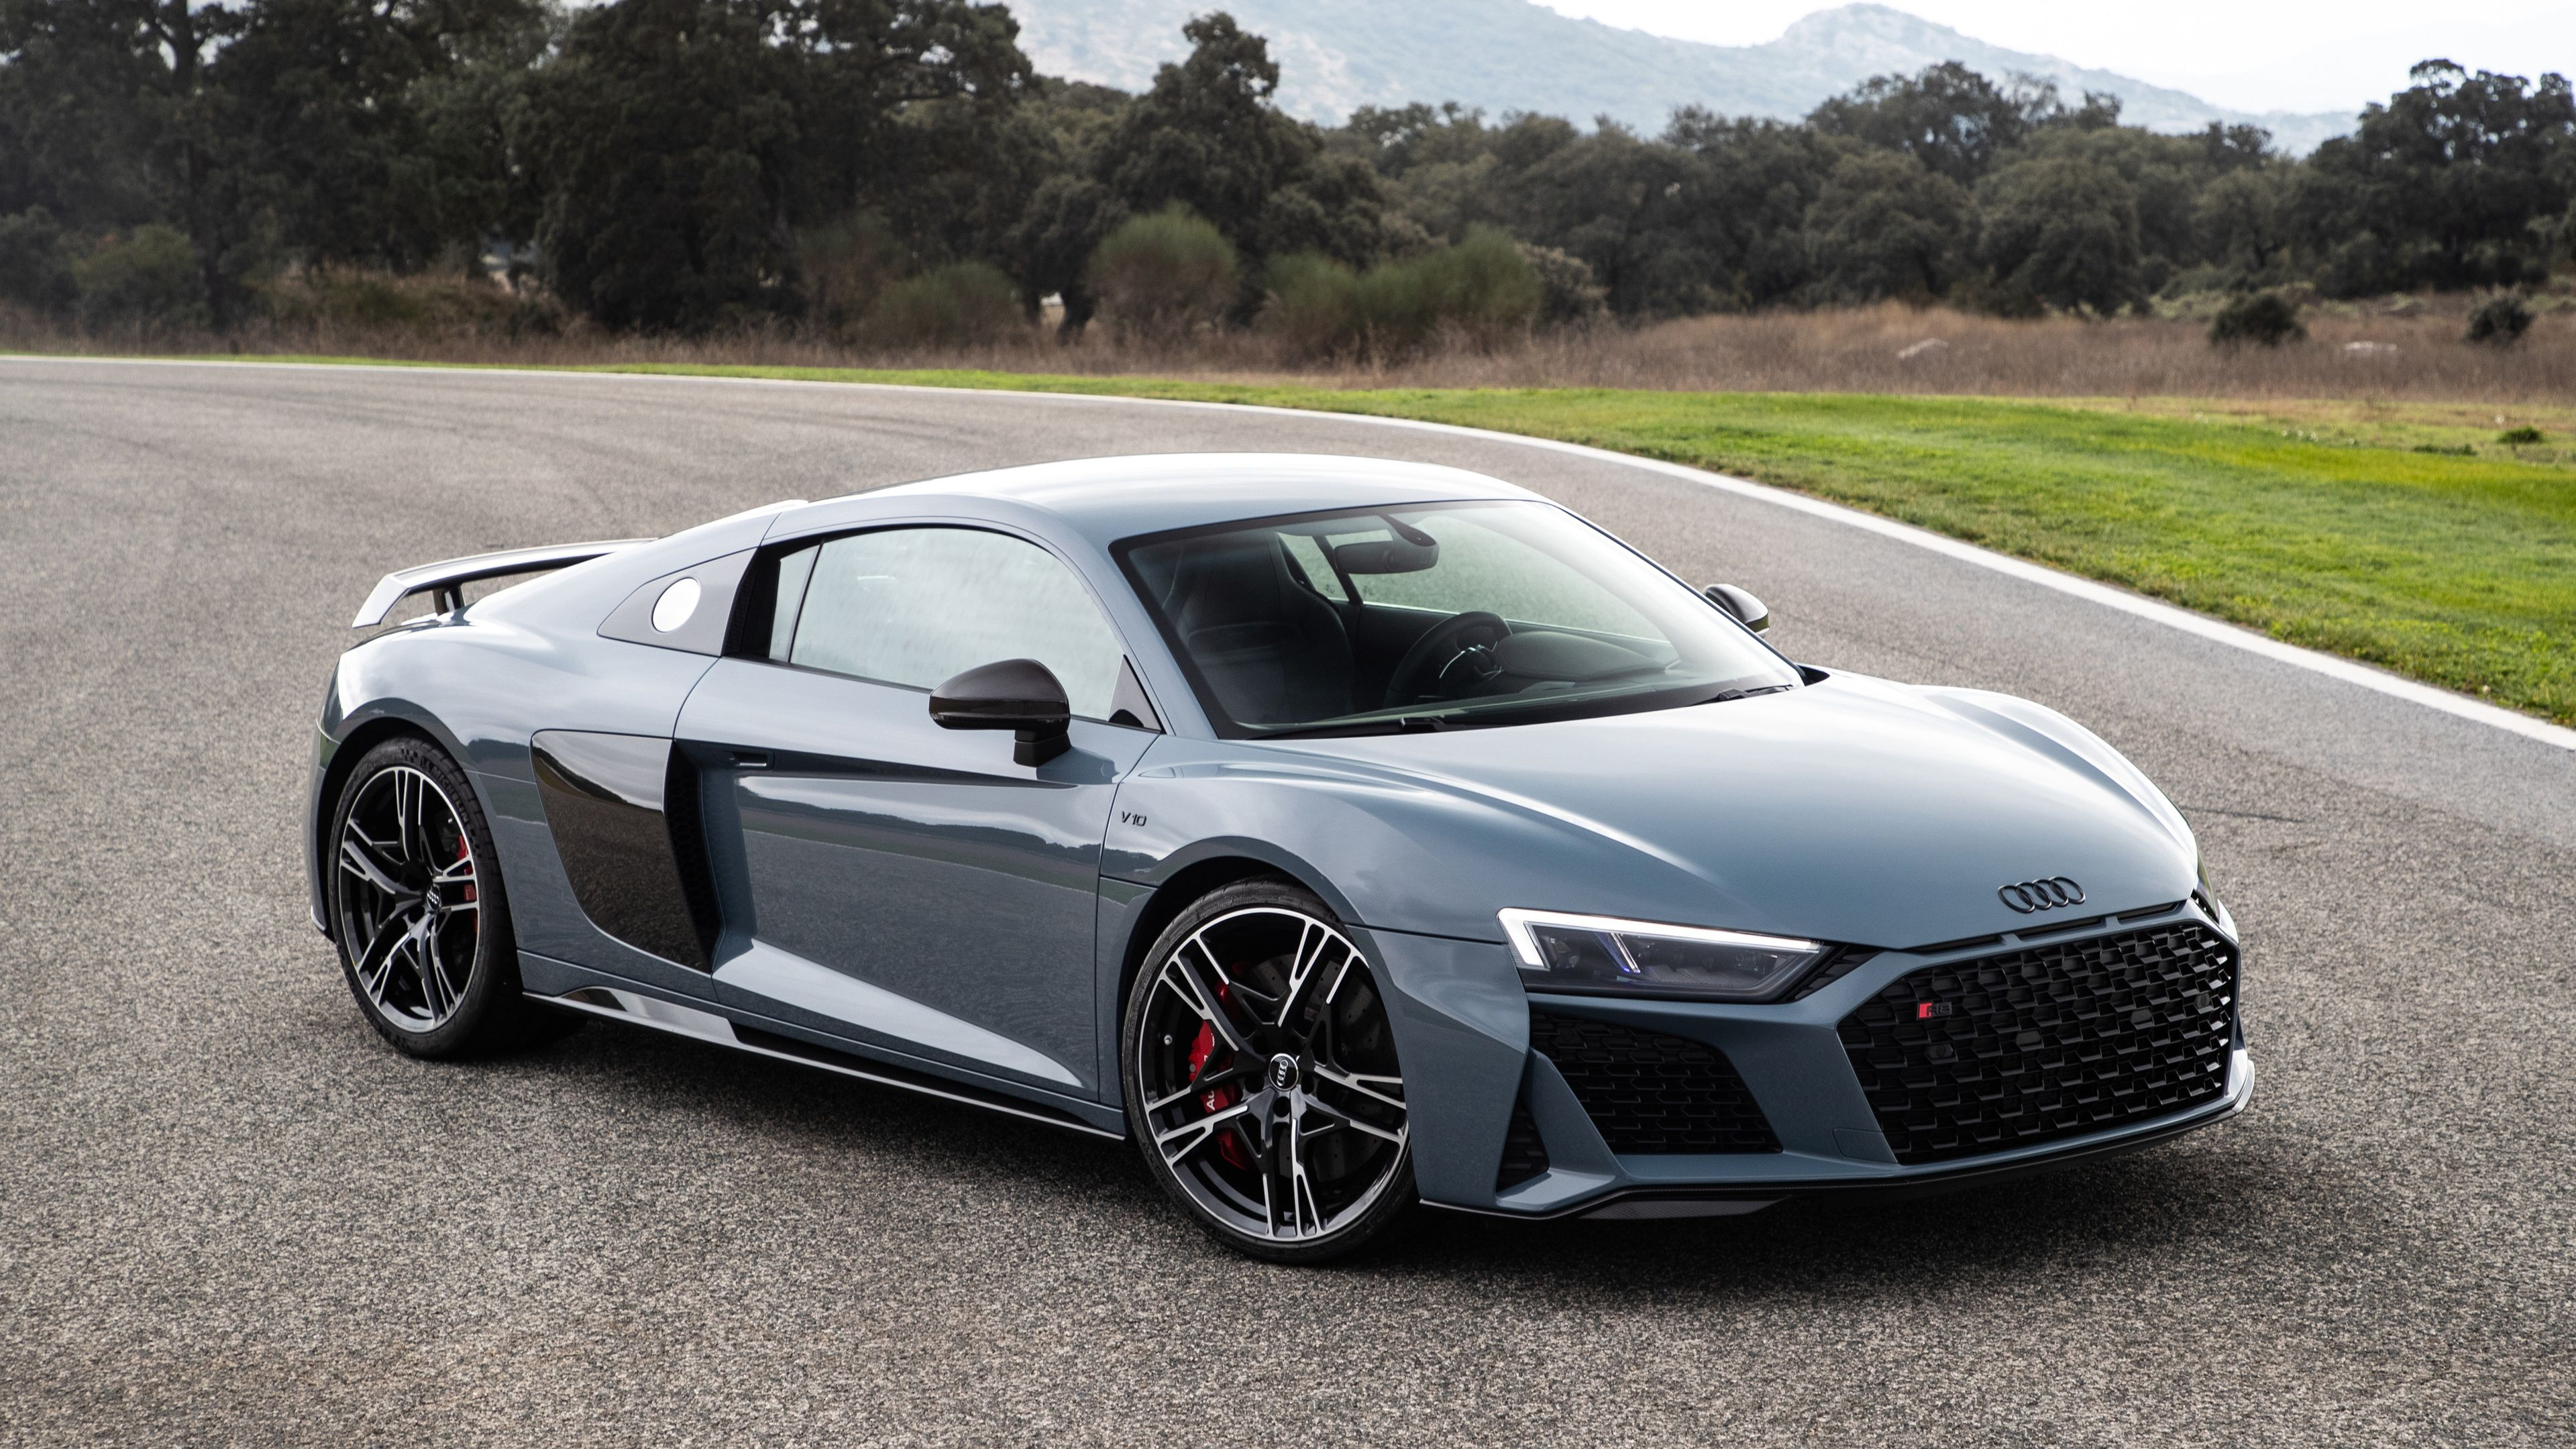 Wallpaper 4k Audi R8 V10 2019 4k 2019 Cars Wallpapers 4k